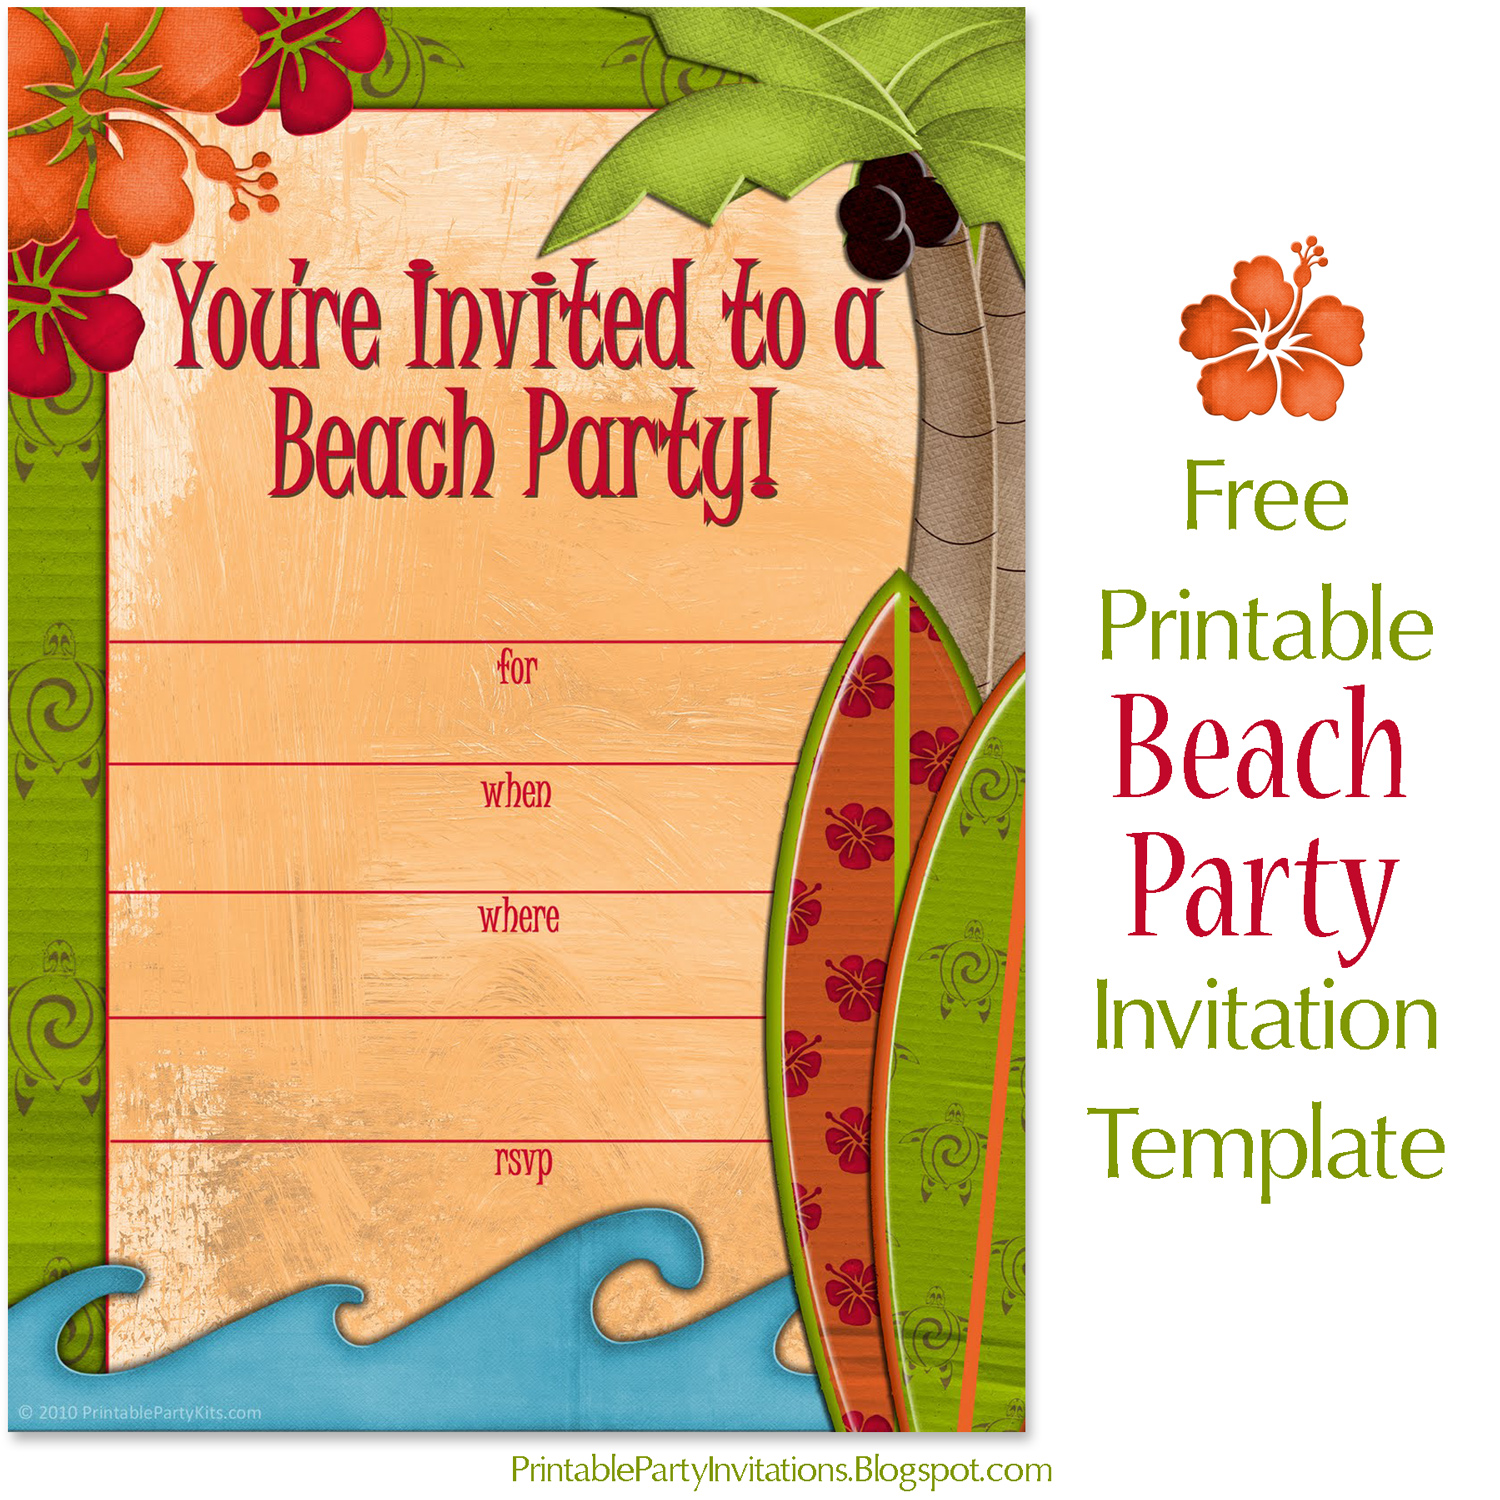 photograph about Beach Party Invitations Free Printable known as Cant uncover subsution for tag [posting.overall body]--\u003e Cost-free Invitations